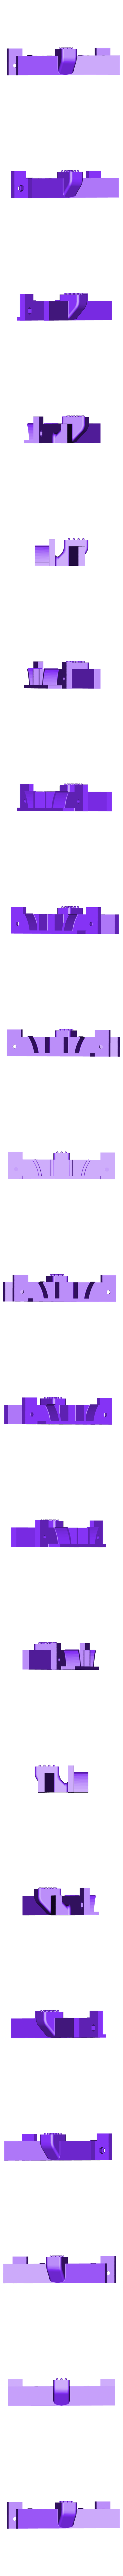 OpenRC_F1_250scaled_-_Rear_Wing_Mount_v17-1.STL Download free STL file OpenRC F1 250% scaled • Template to 3D print, colorFabb